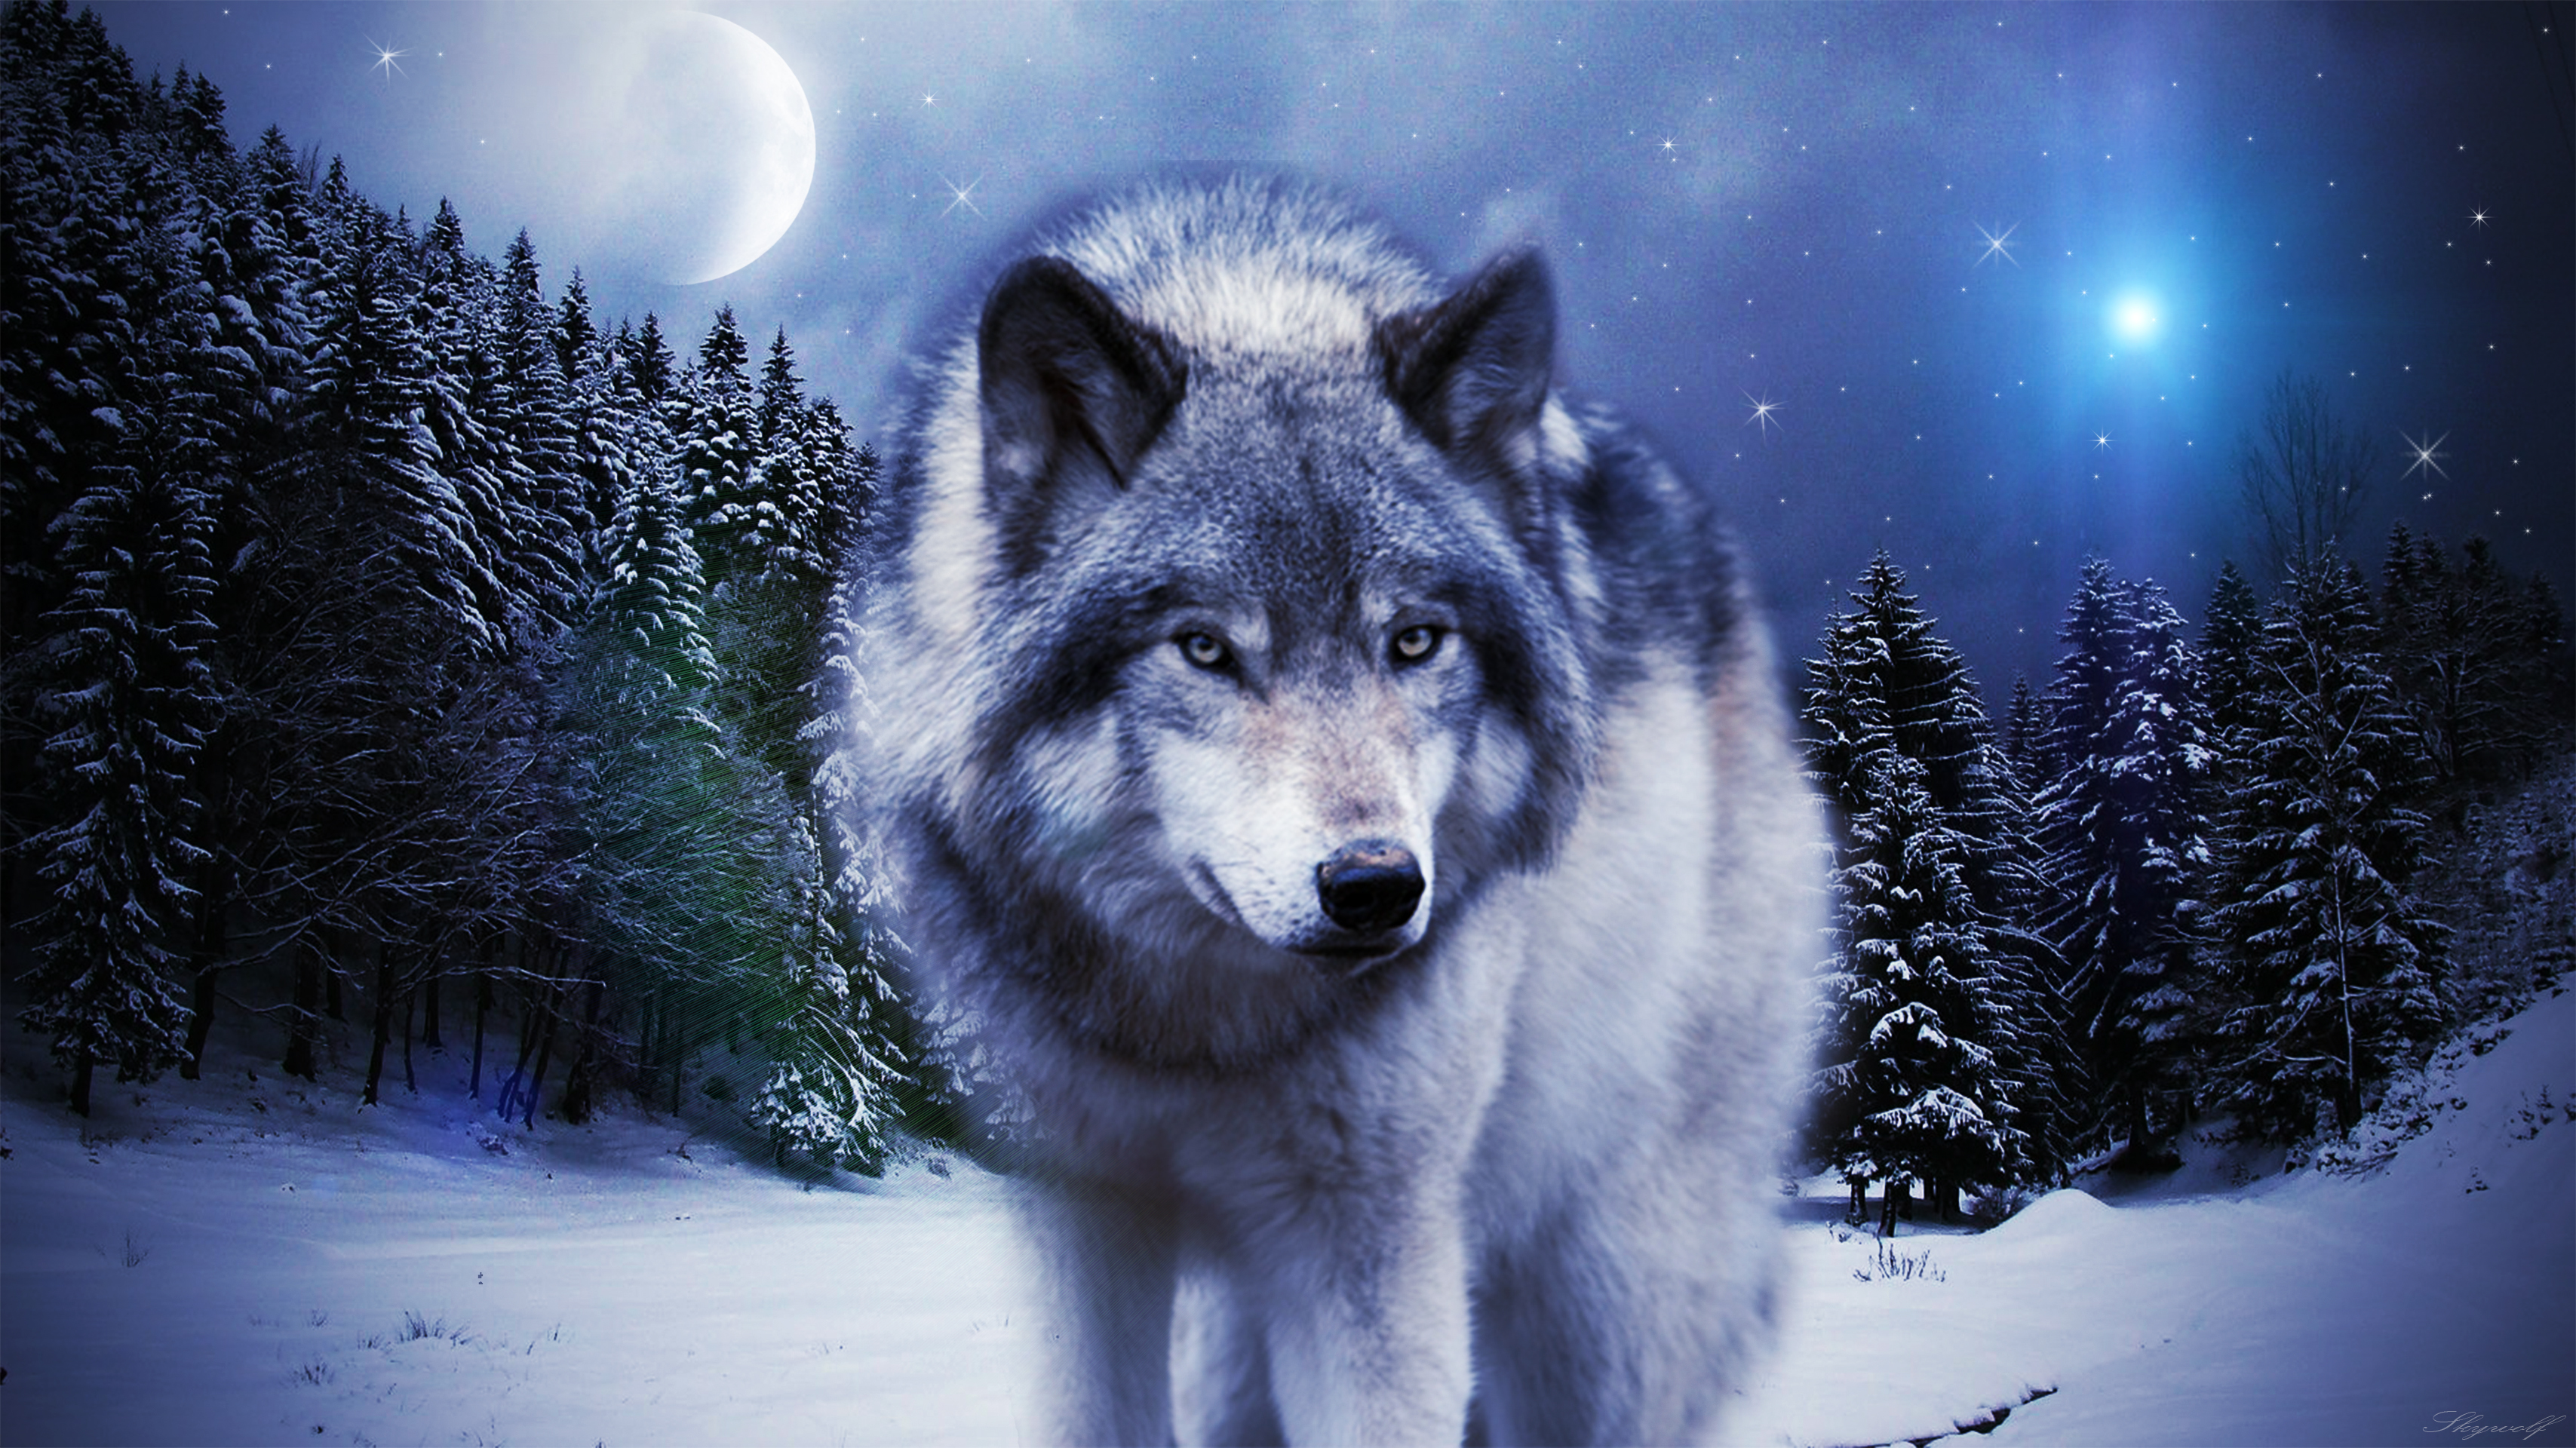 Hd wallpaper wolf - Wolf Hd Wallpaper